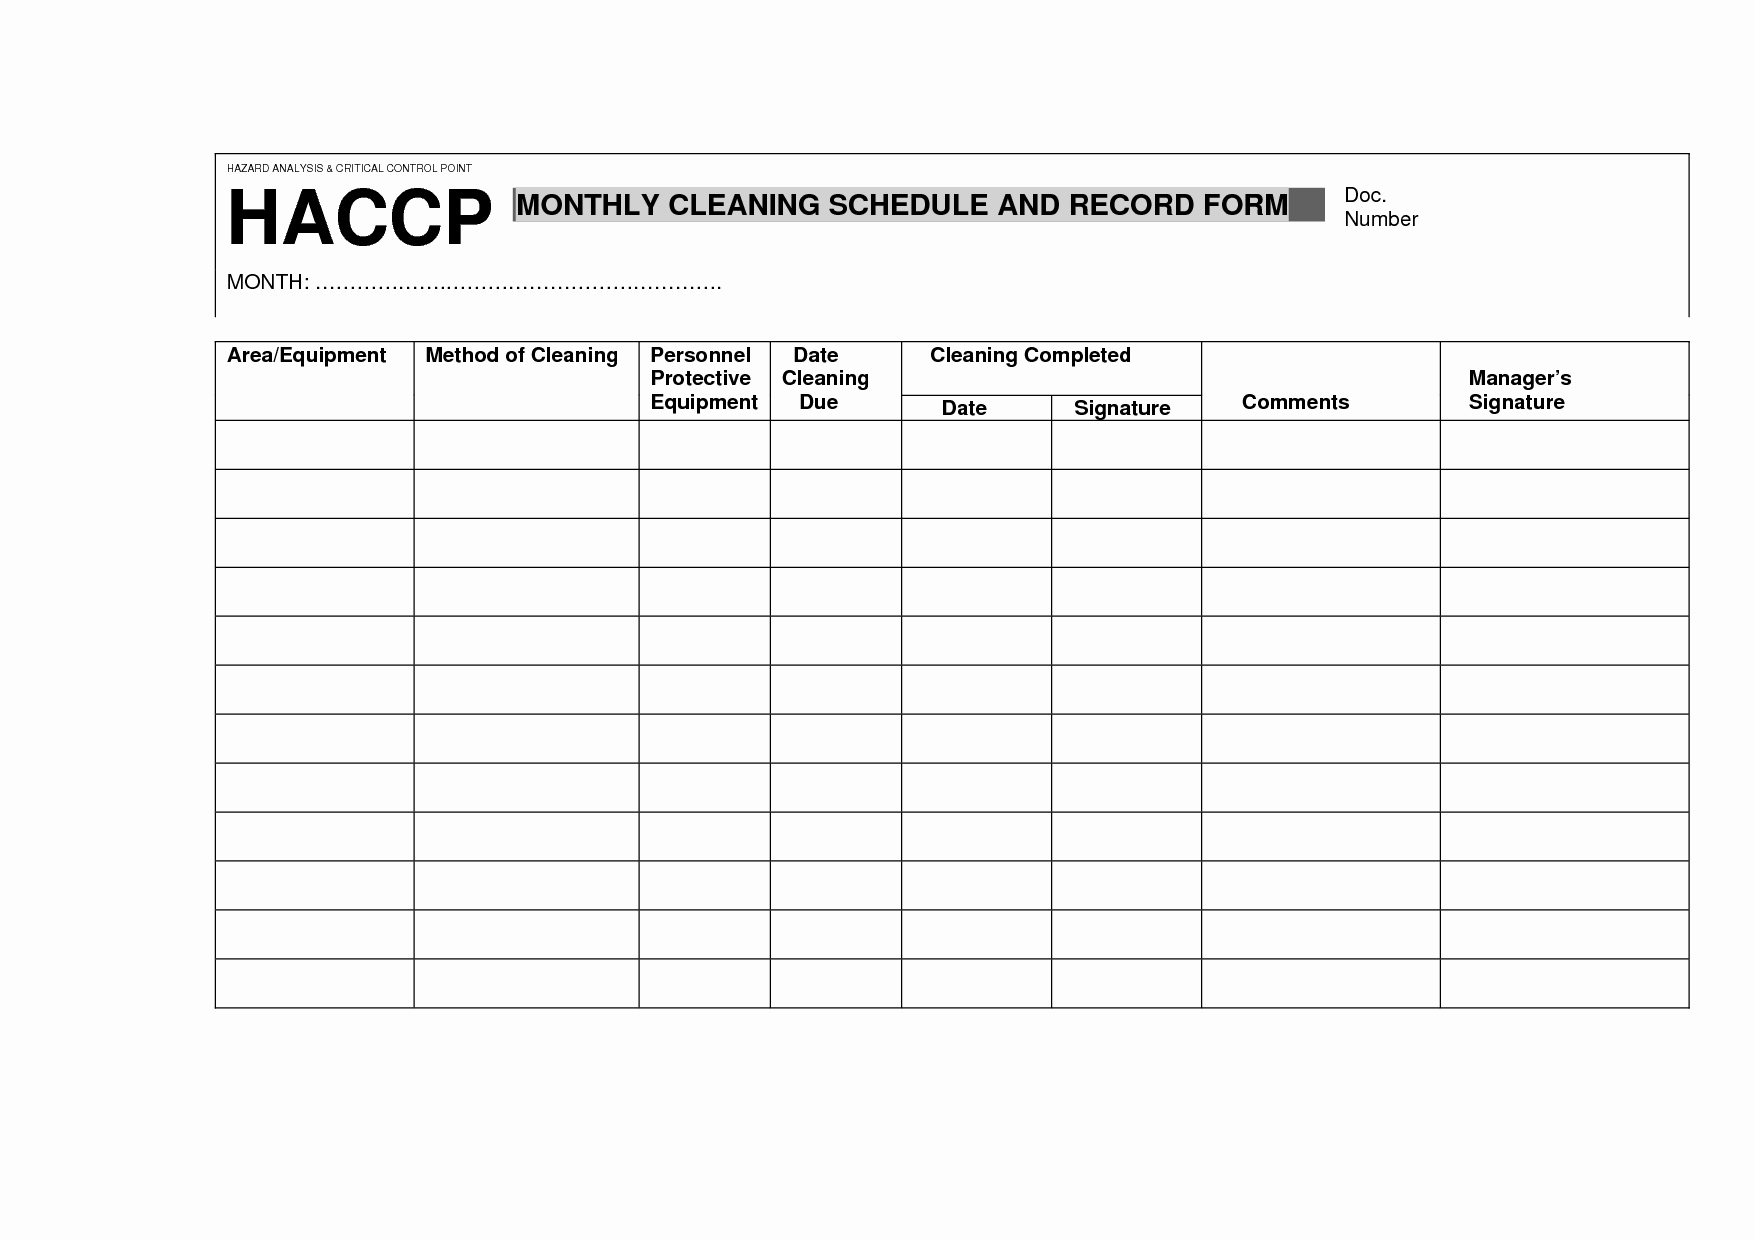 Food Safety Plan Template Elegant Haccp Cleaning Schedule and Record form